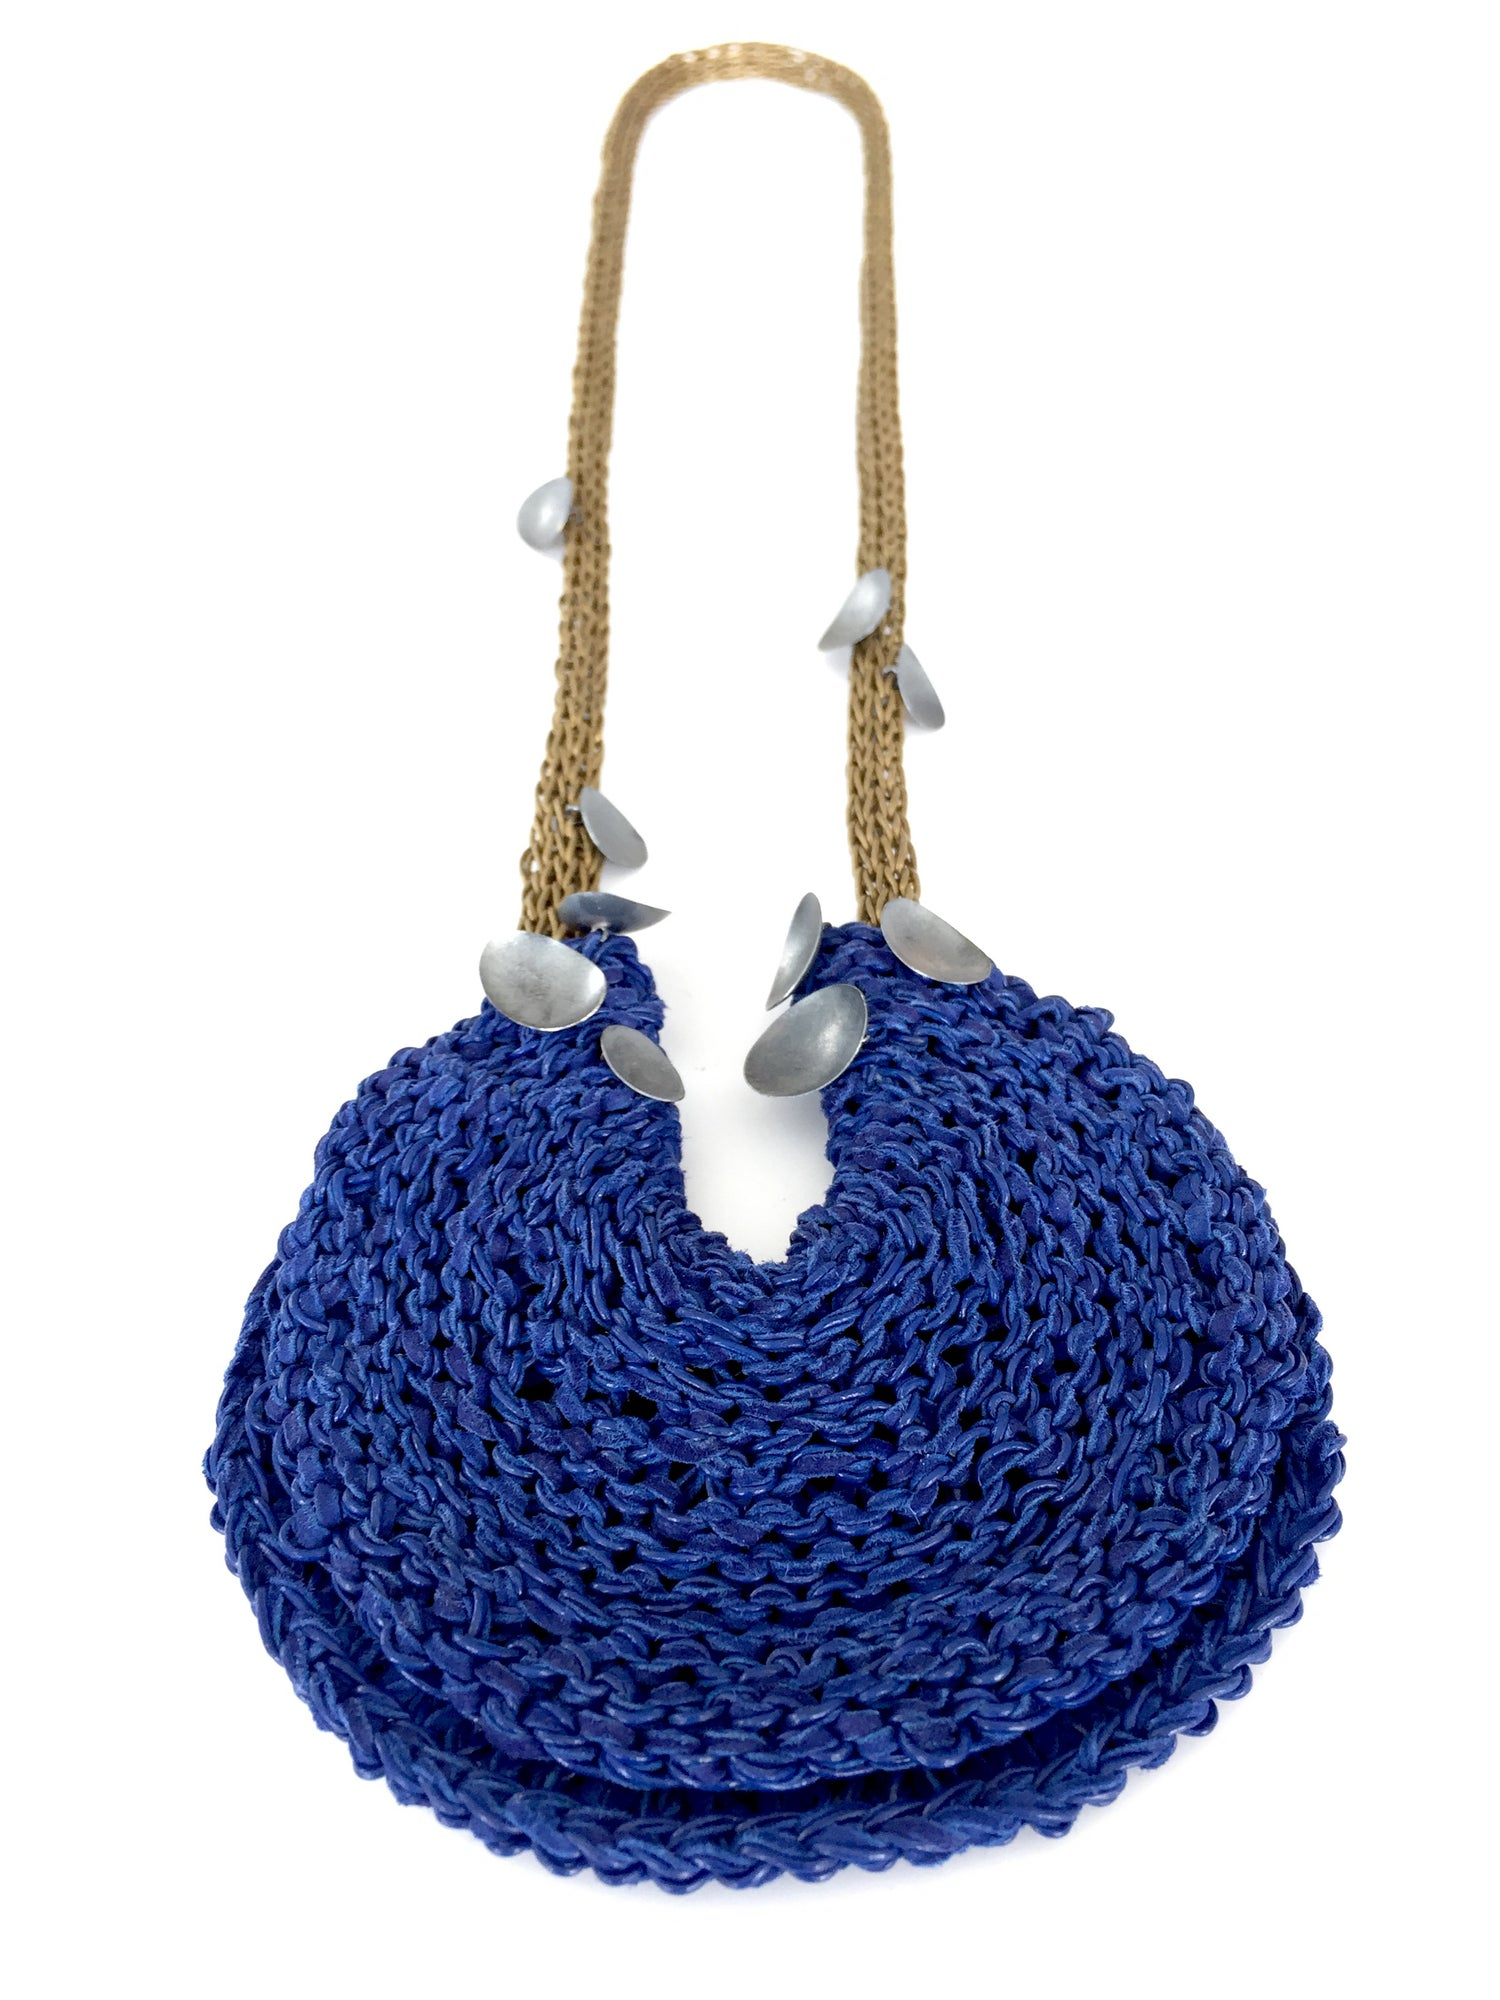 Image of Brooke Marks-Swanson Blue Disc Necklace, 2018